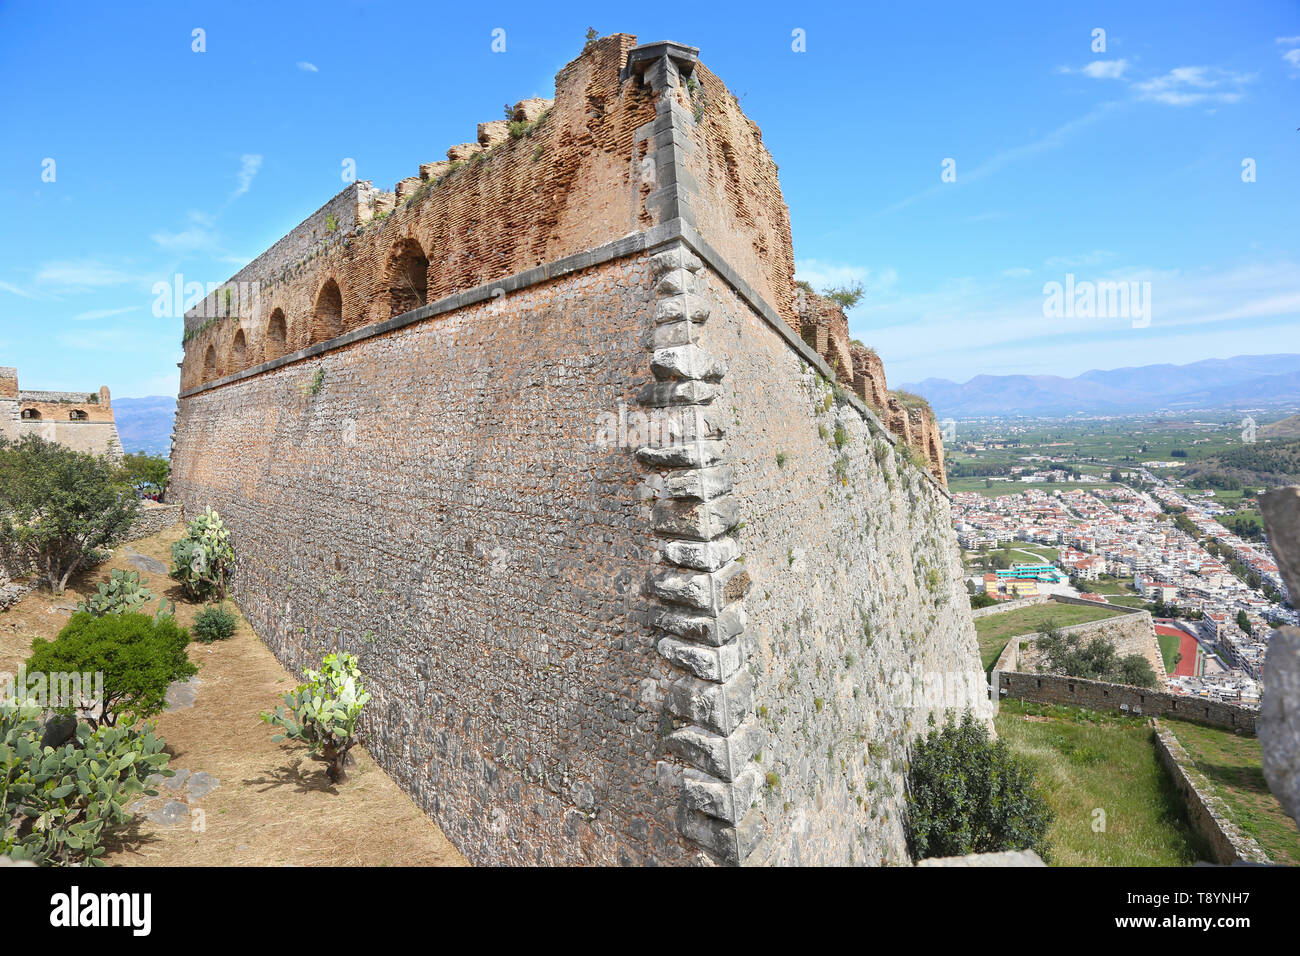 the Palamidi fortress in the town of Nafplio Argolis Greece - Stock Image